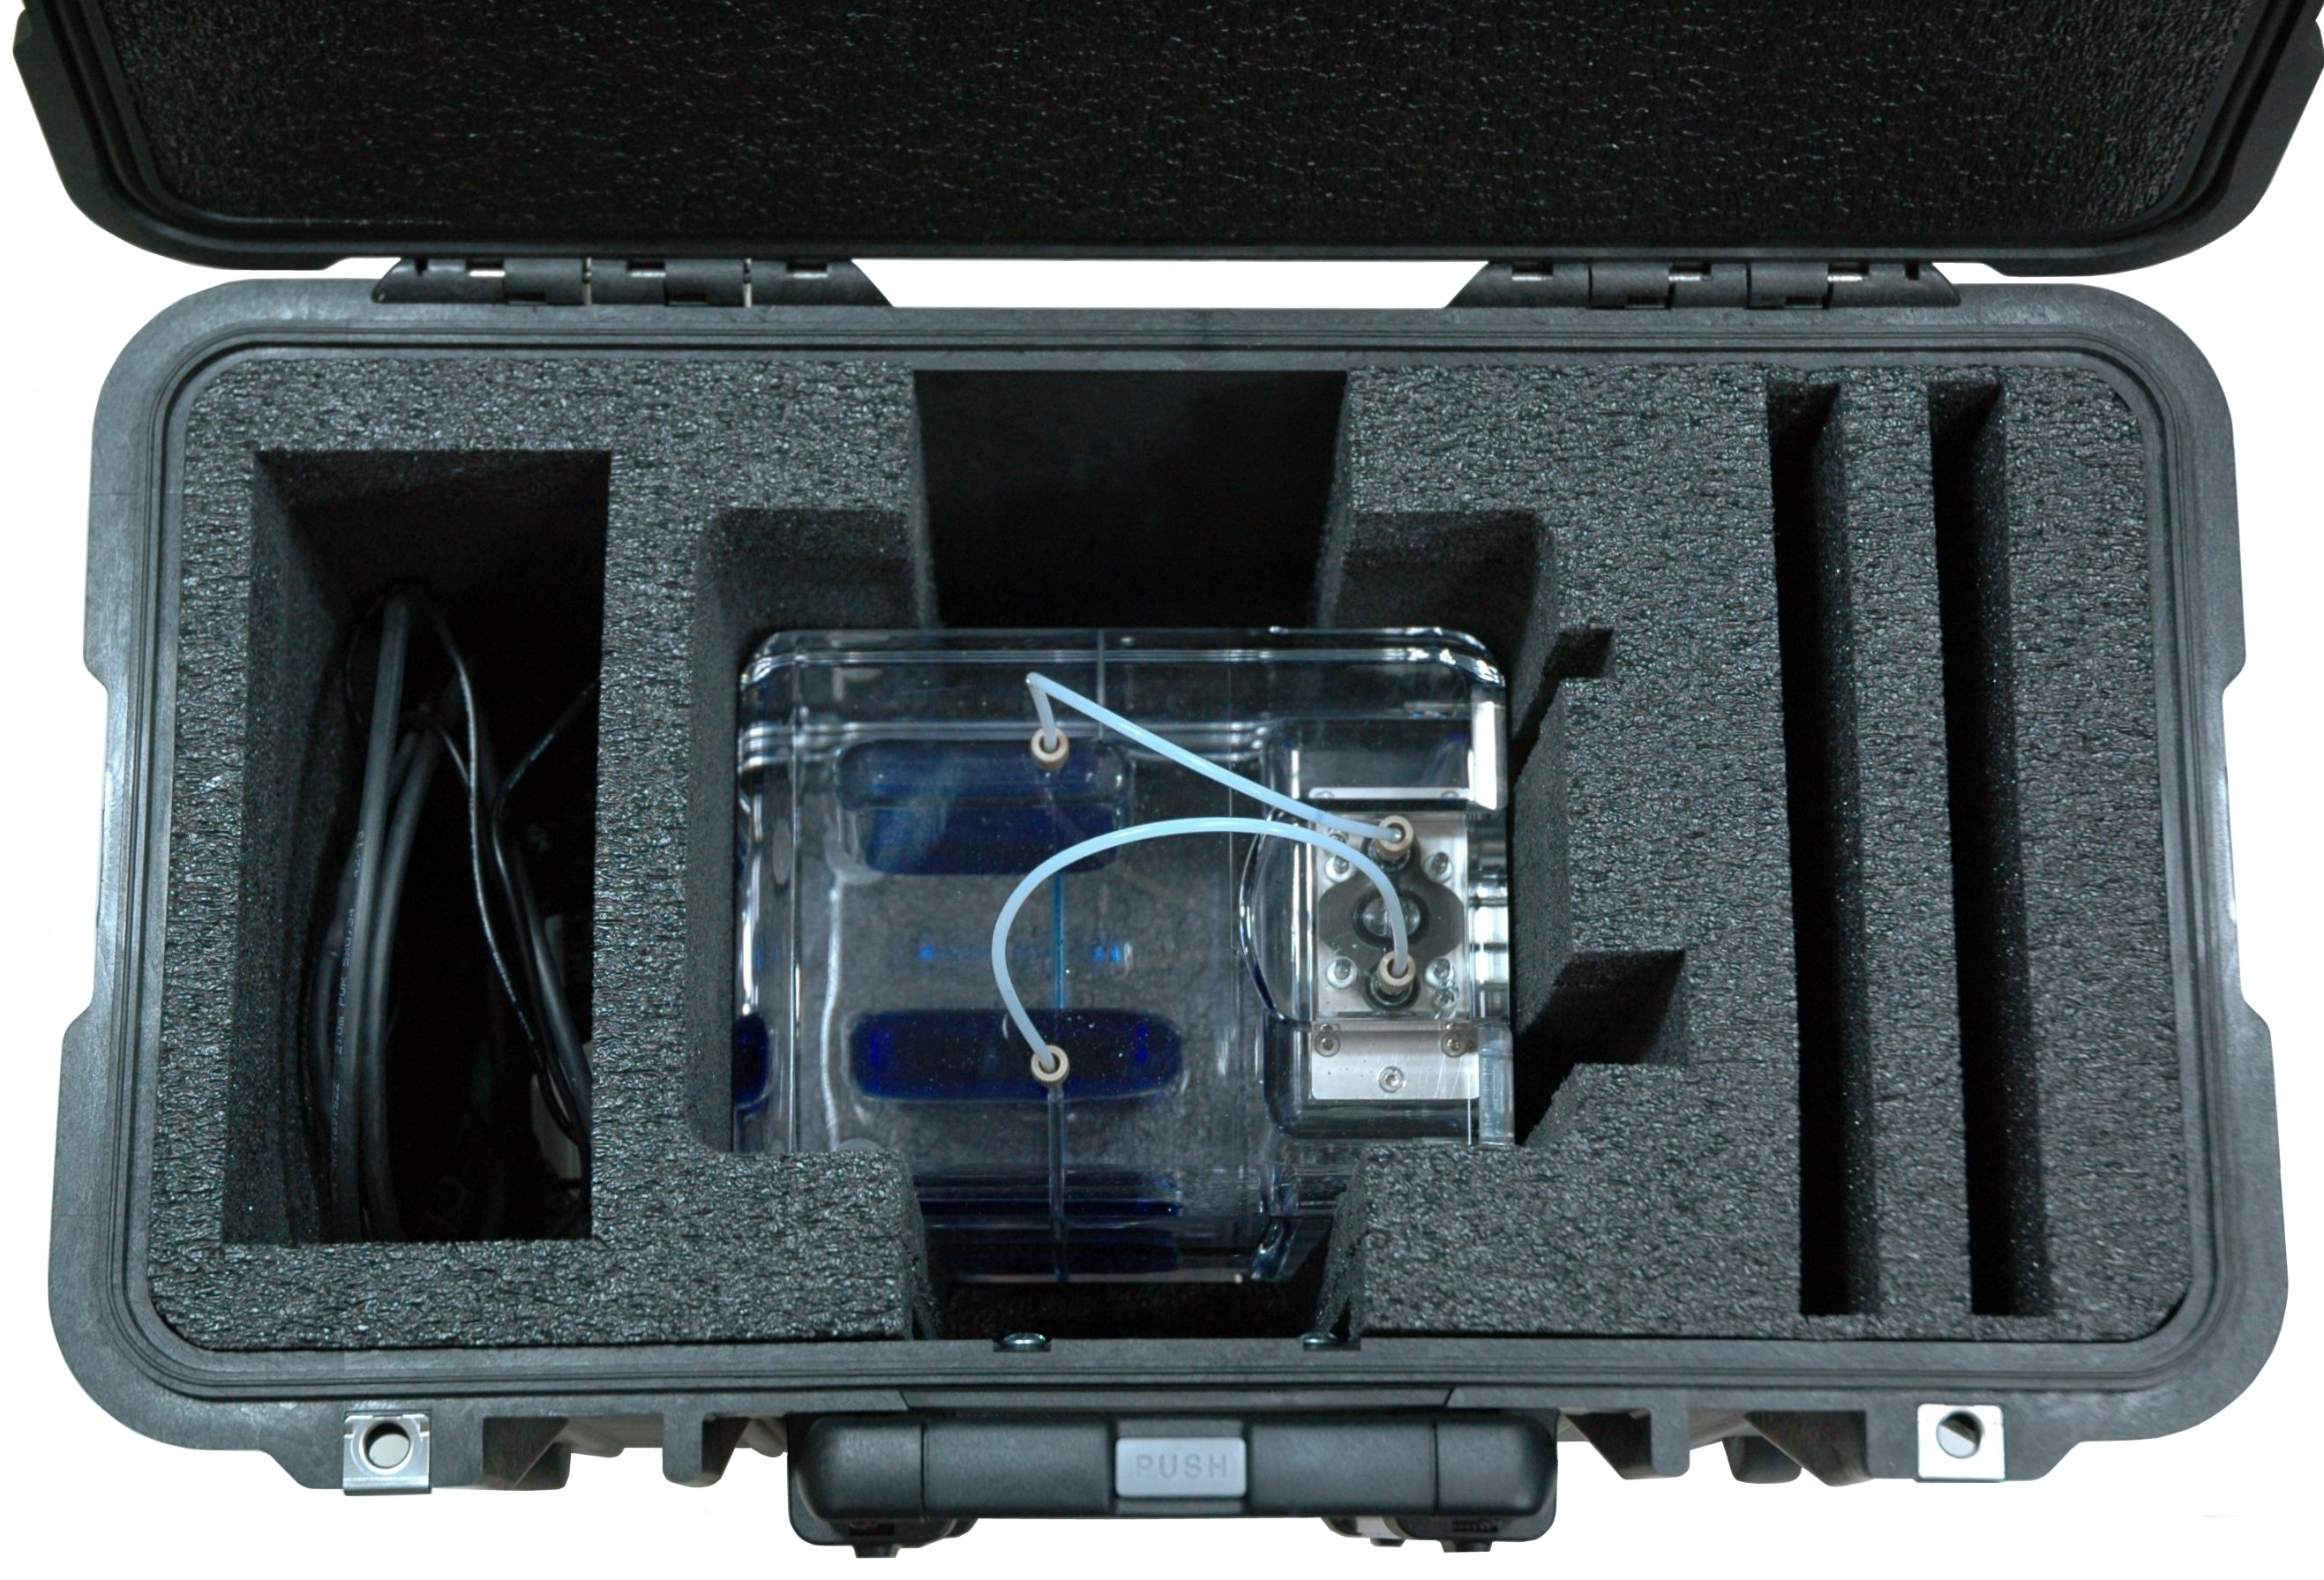 Pelican™ 1440 Case Custom Foam Example: Burkert Fluid Control System Case